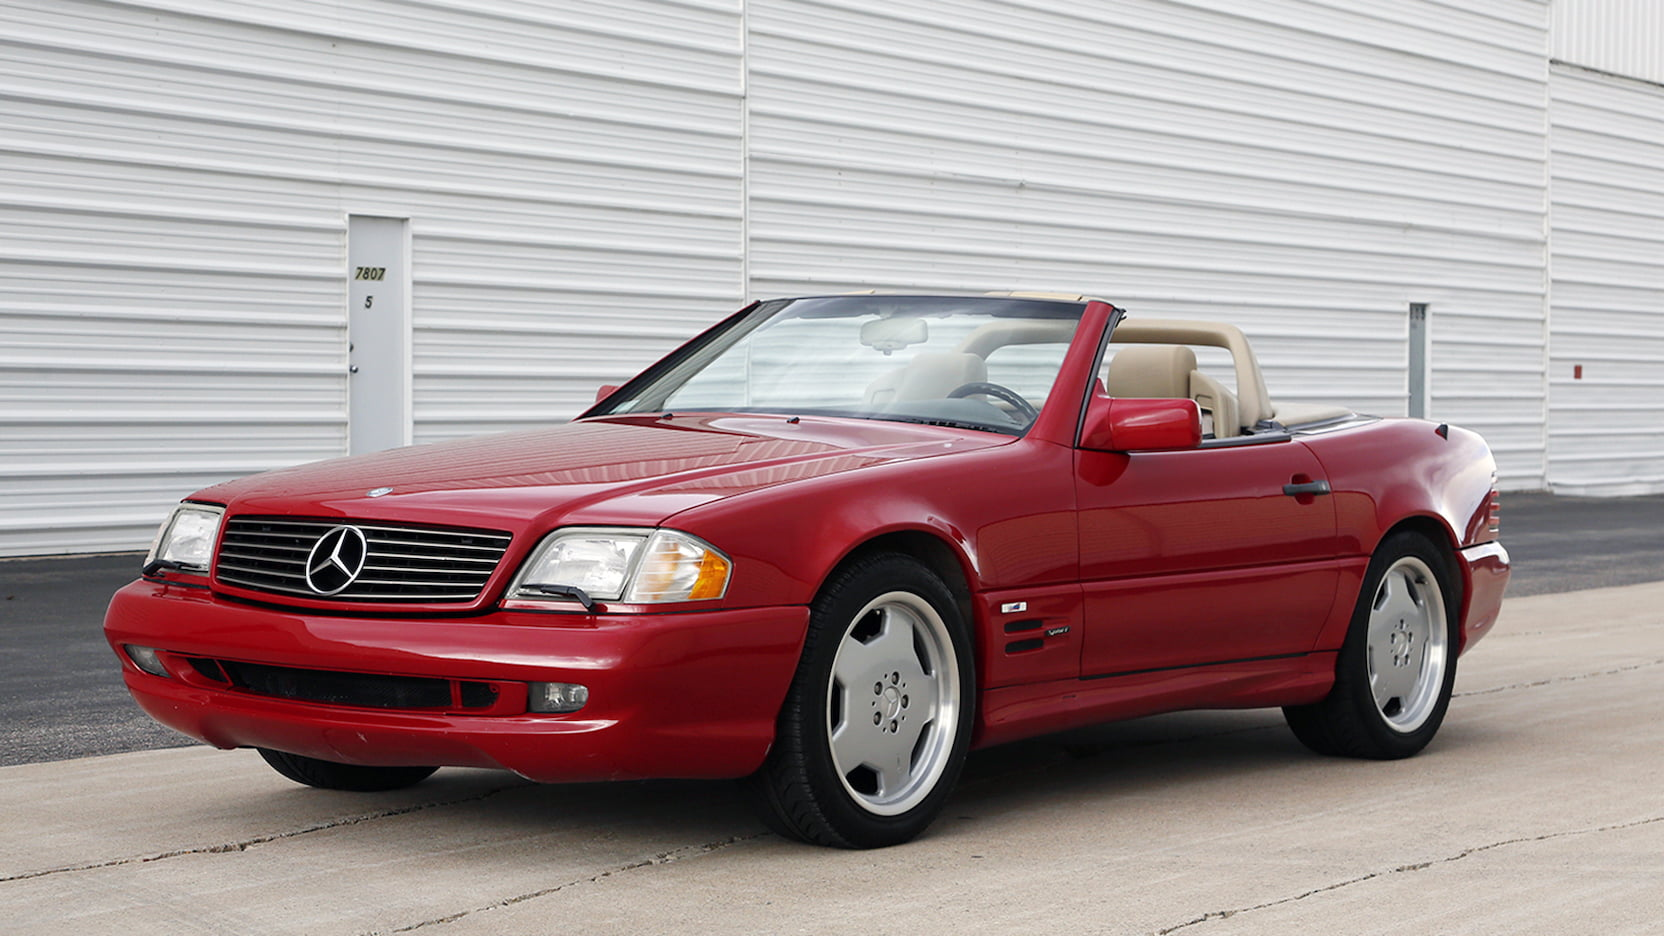 1996 Mercedes-Benz SL 500 roadster